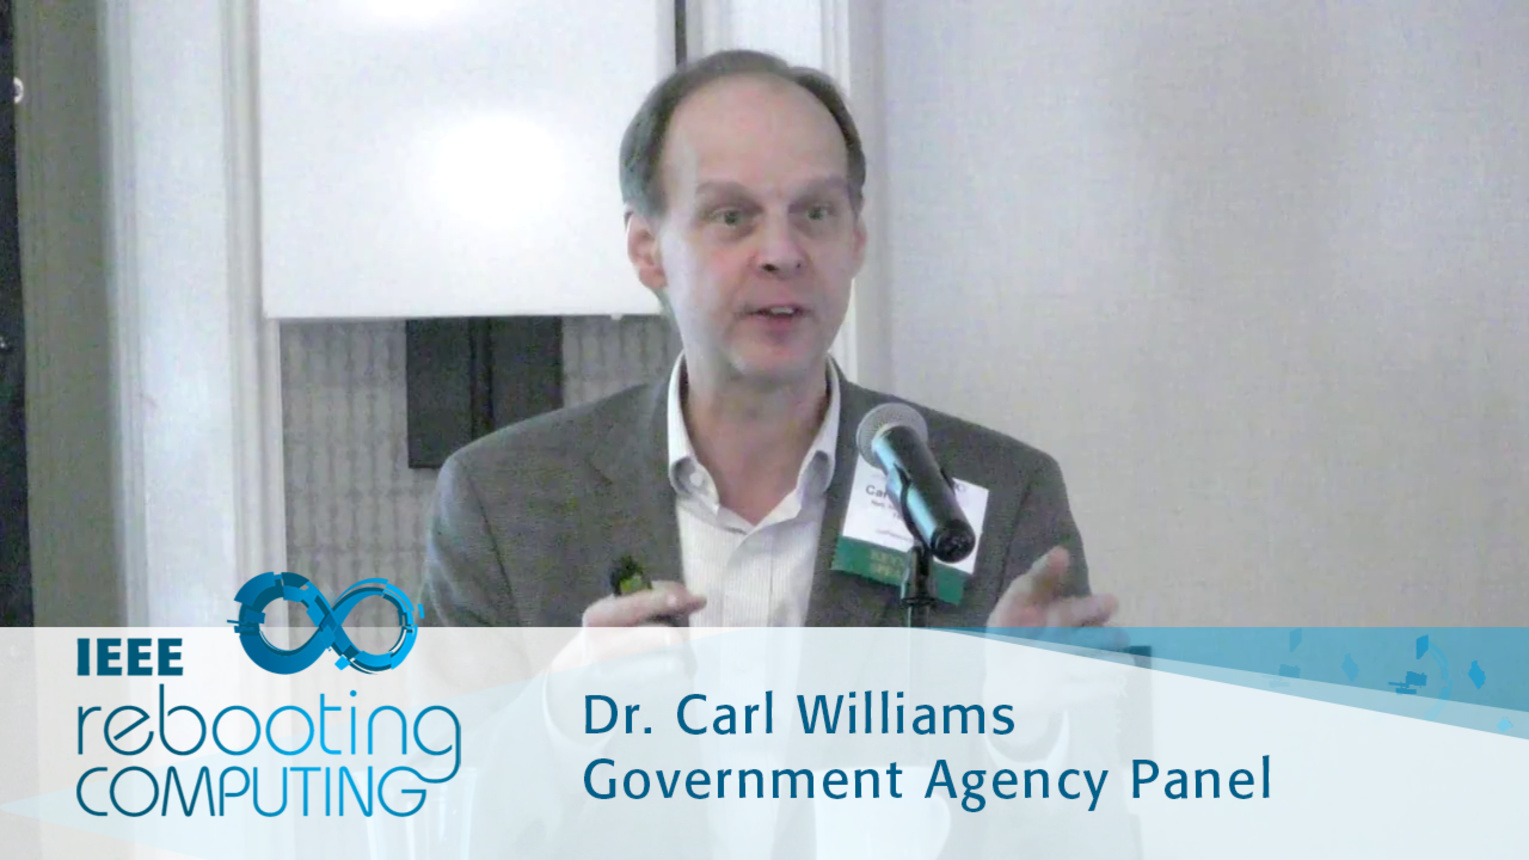 National Strategic Computing Initiative - Carl Williams: 2016 International Conference on Rebooting Computing